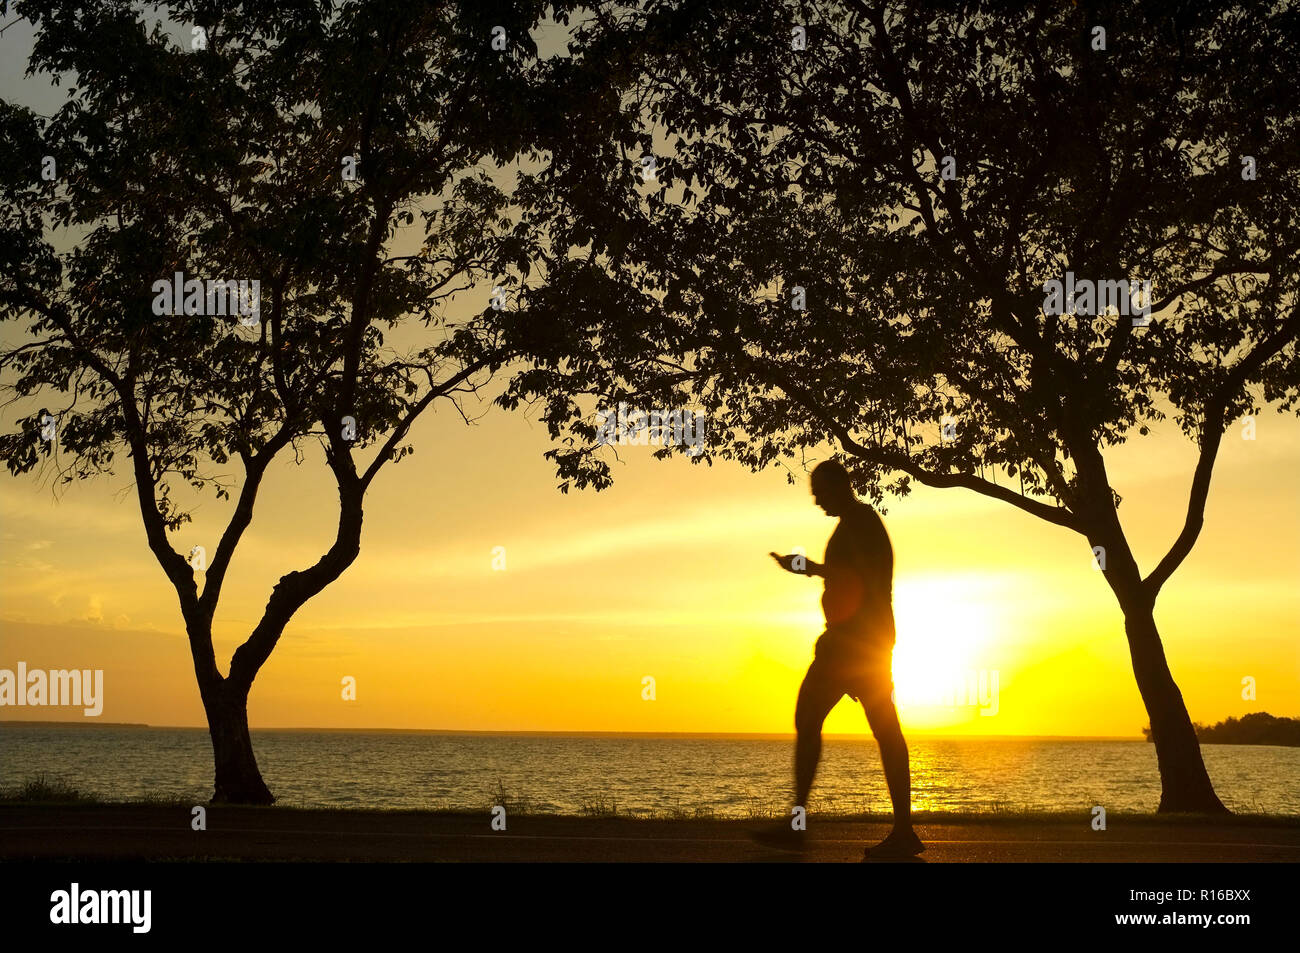 silhouette-of-trees-and-a-man-walking-while-looking-at-his-mobile-phone-against-a-beach-sunset-R16BXX.jpg